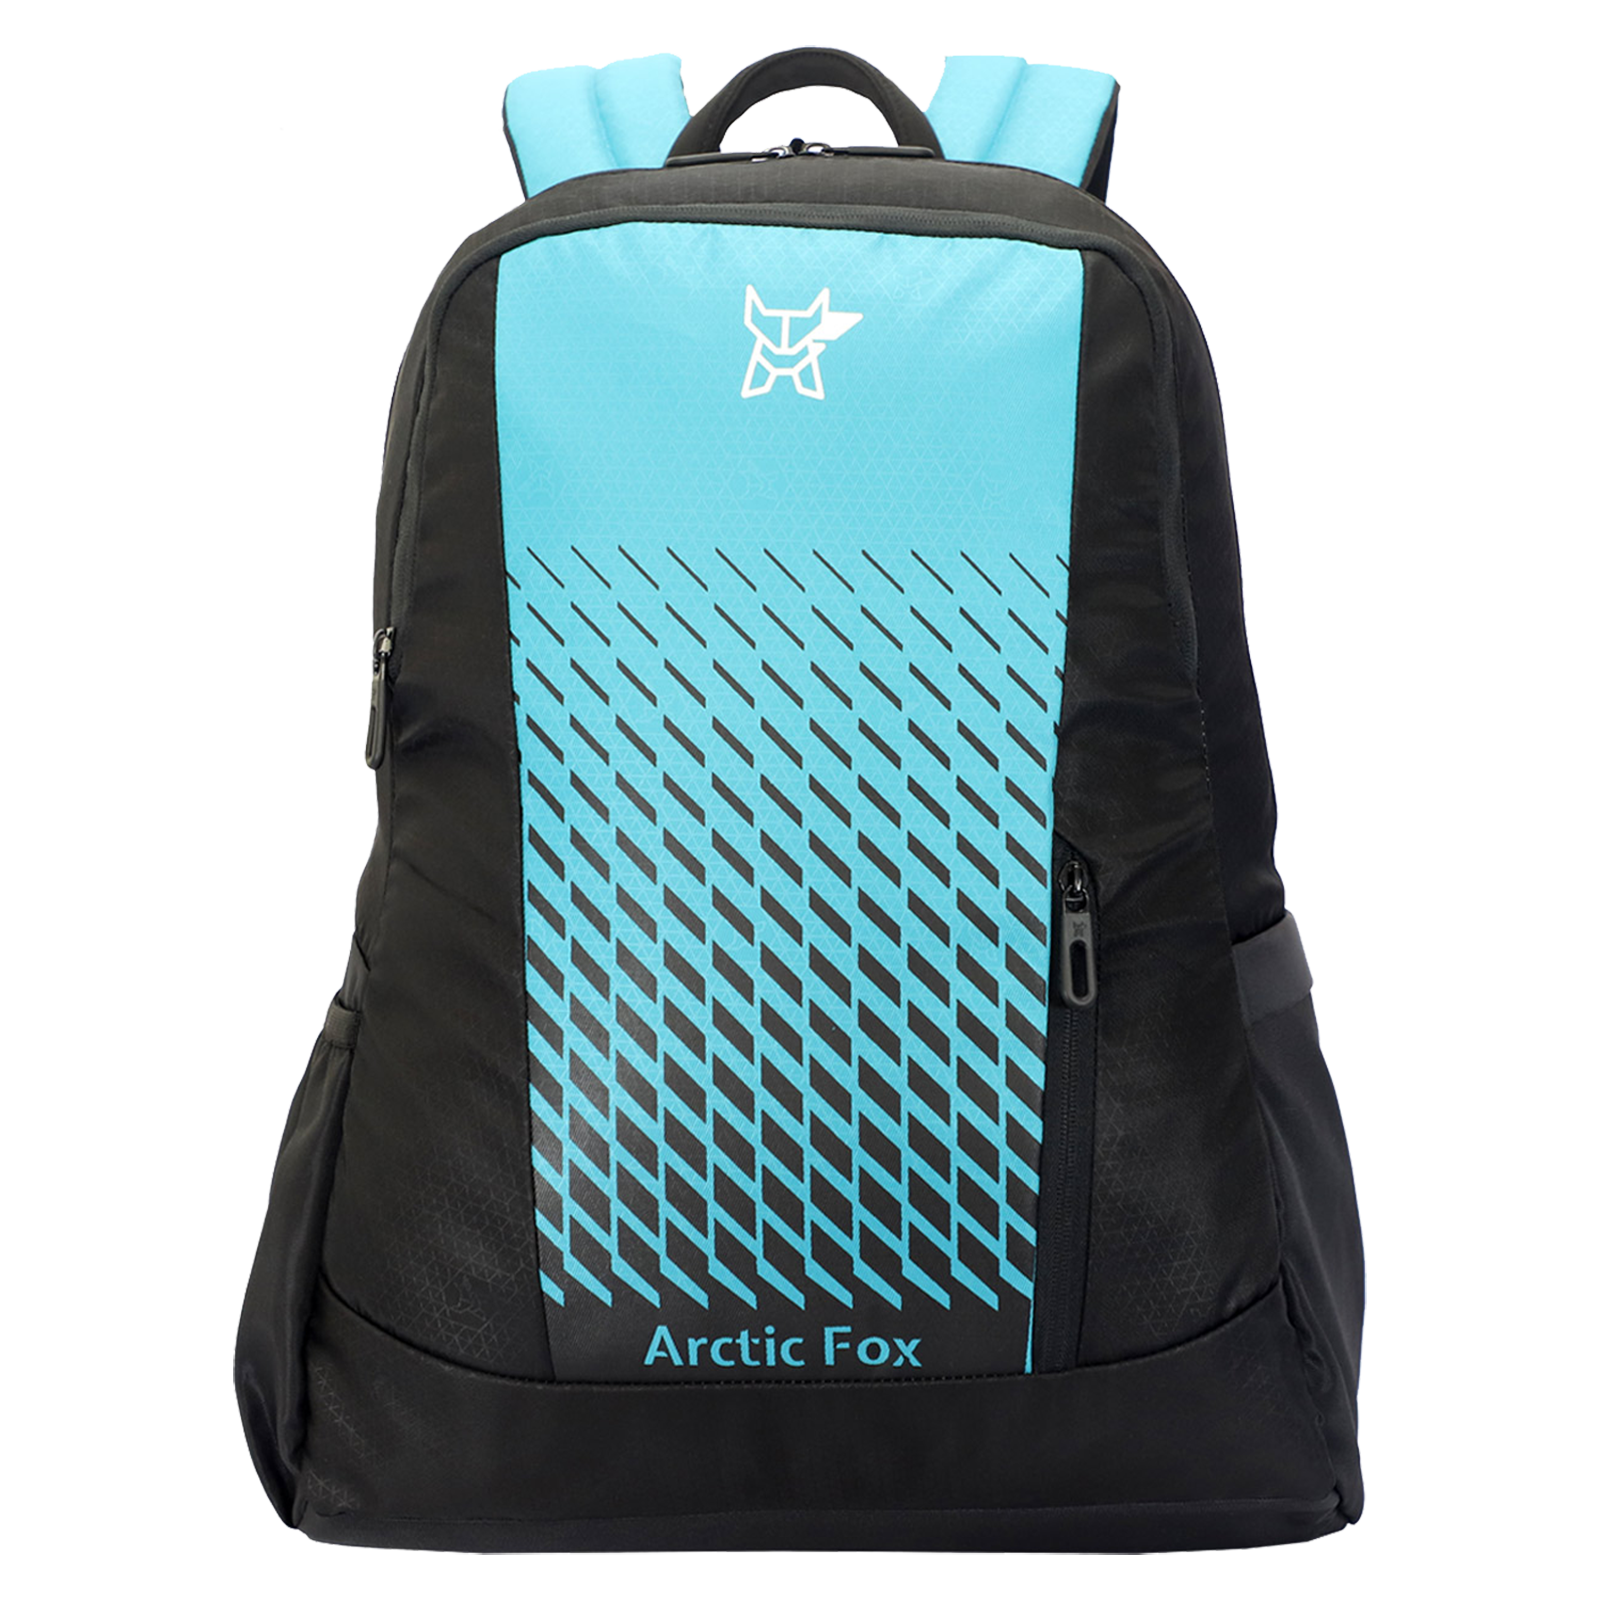 Arctic Fox Grill 28.5 Litres PU Coated Polyester Backpack (2 Spacious Compartments, FTEBPKCSEON062029, Caribbean Sea)_1